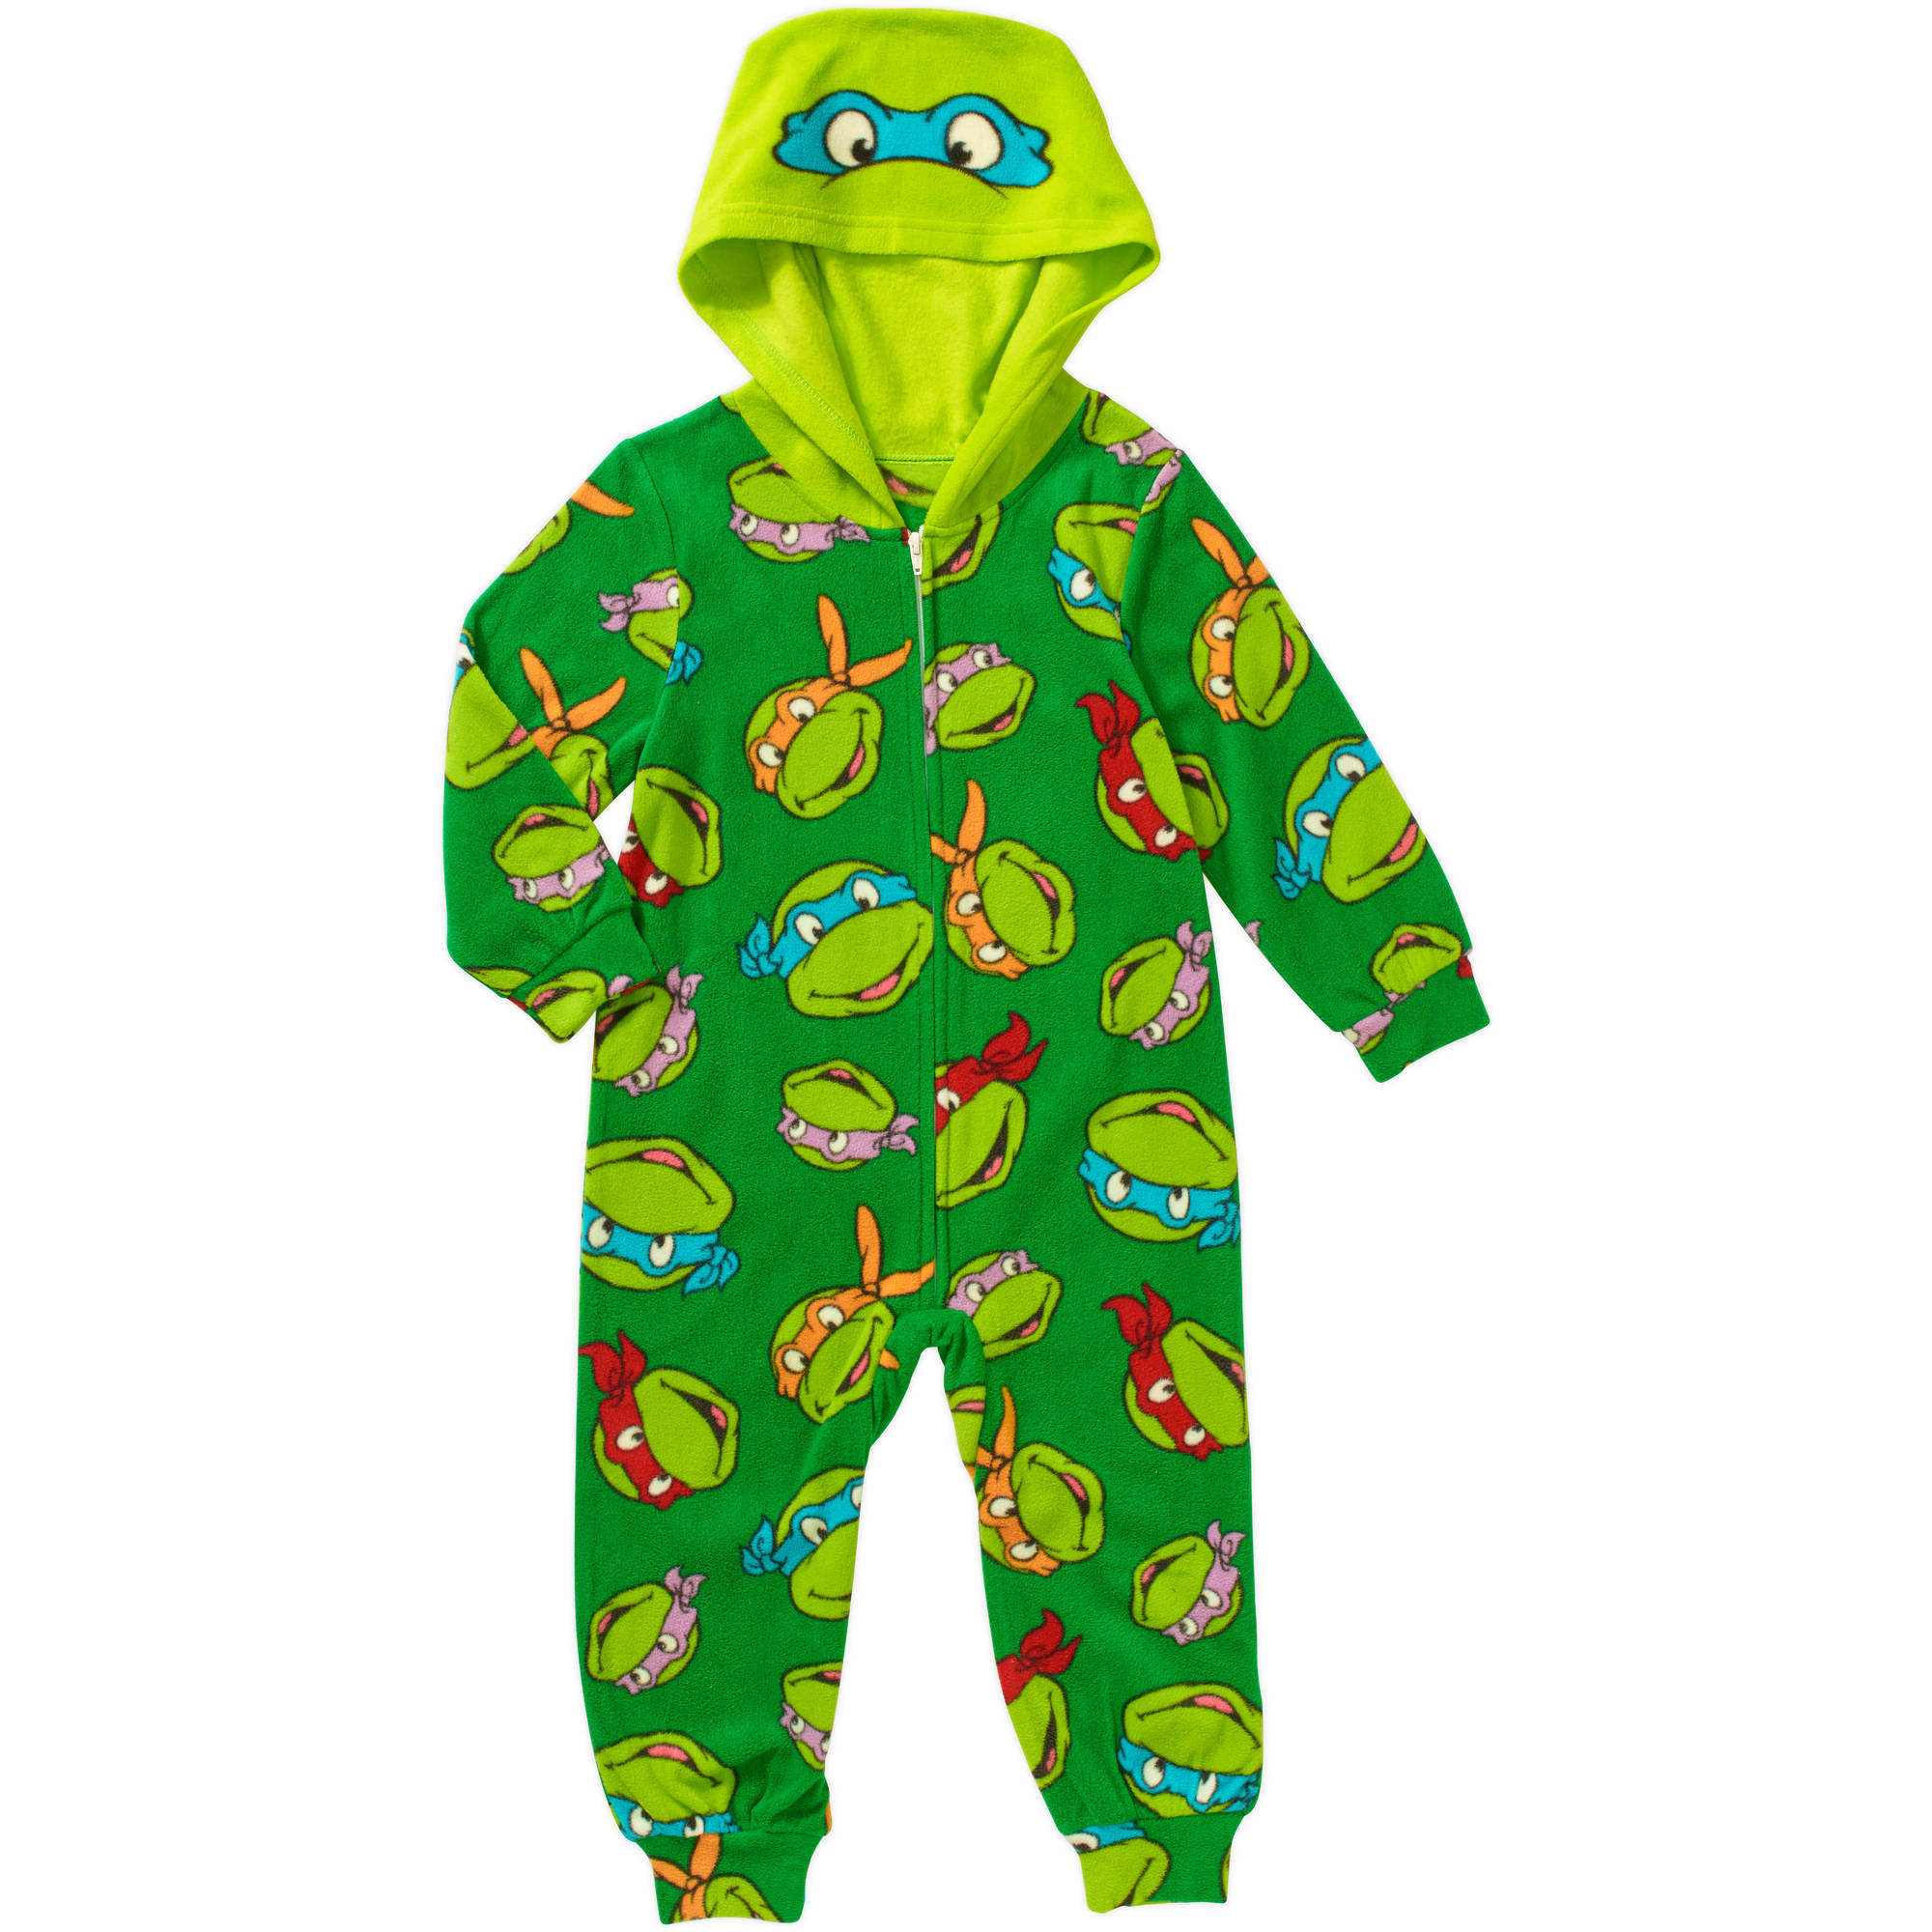 Teenage Mutant Ninja Turtles Toddler Boy Hooded Novelty Zip Footed Pajama